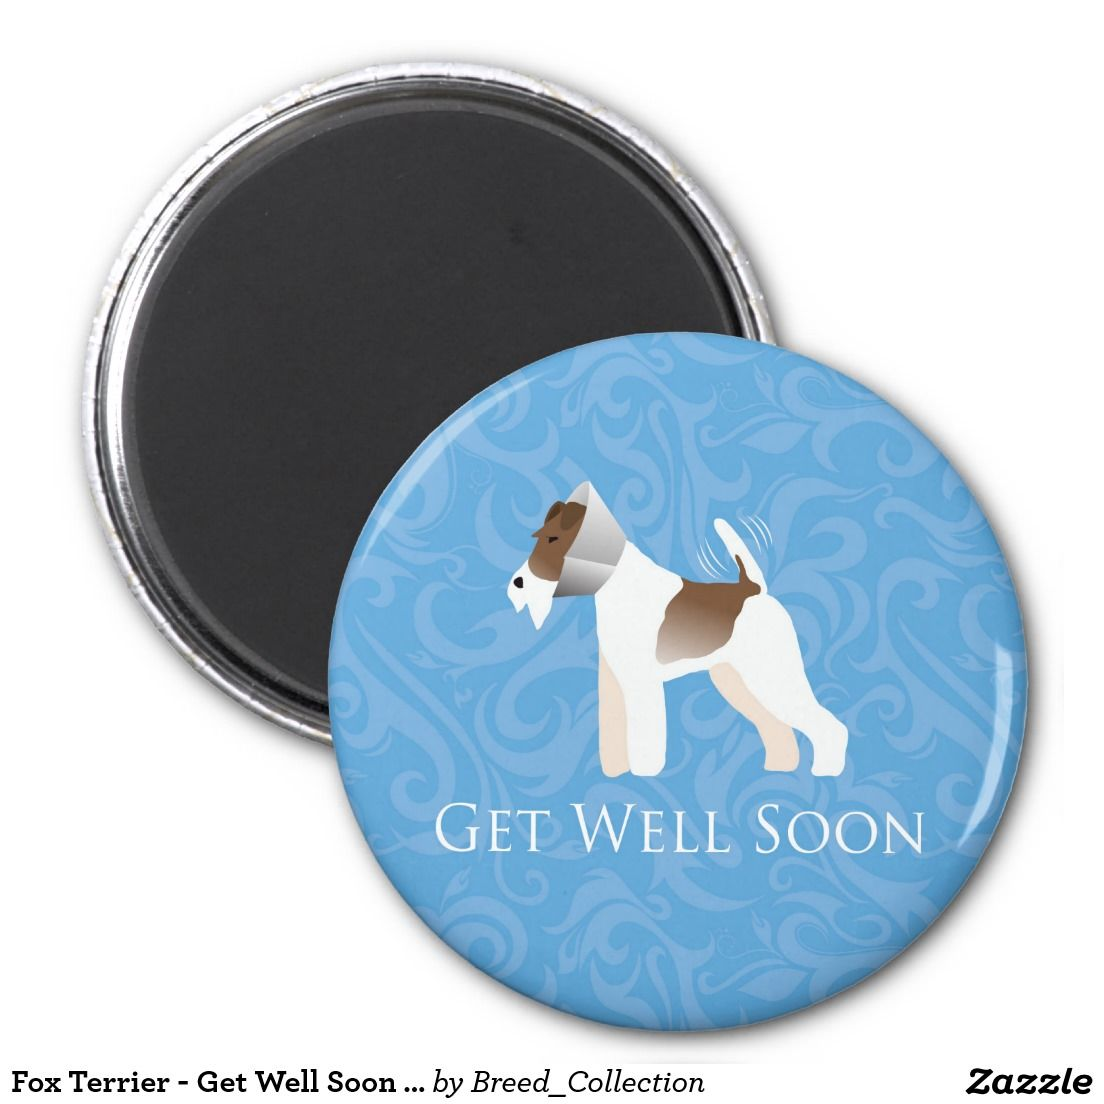 Fox Terrier - Get Well Soon - Dog in Cone 2 Inch Round Magnet | Fox ...